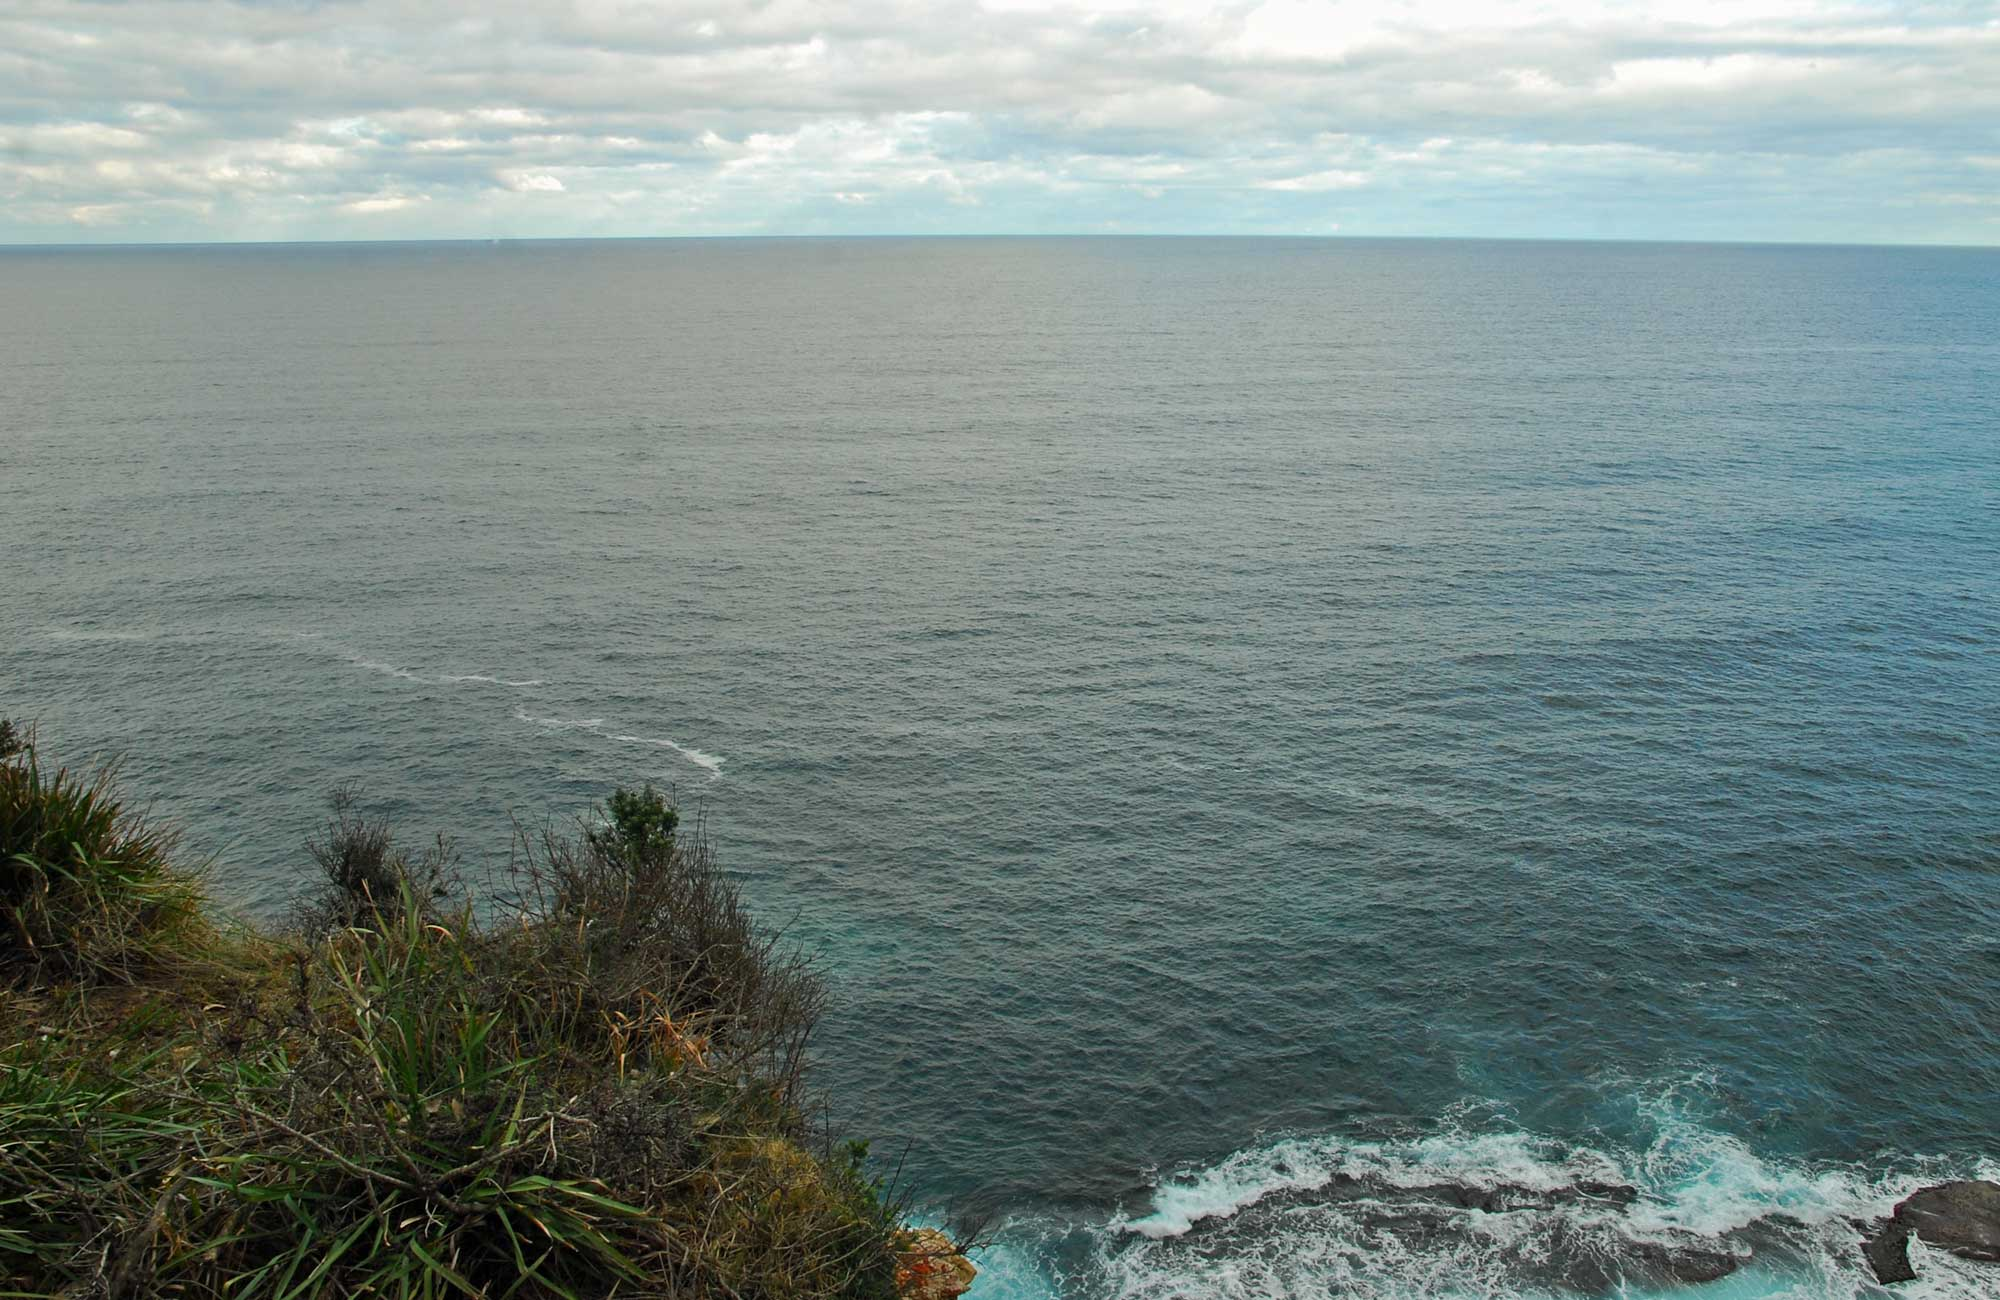 Snapper Point lookout, Murramarang National Park. Photo: M Jarmon